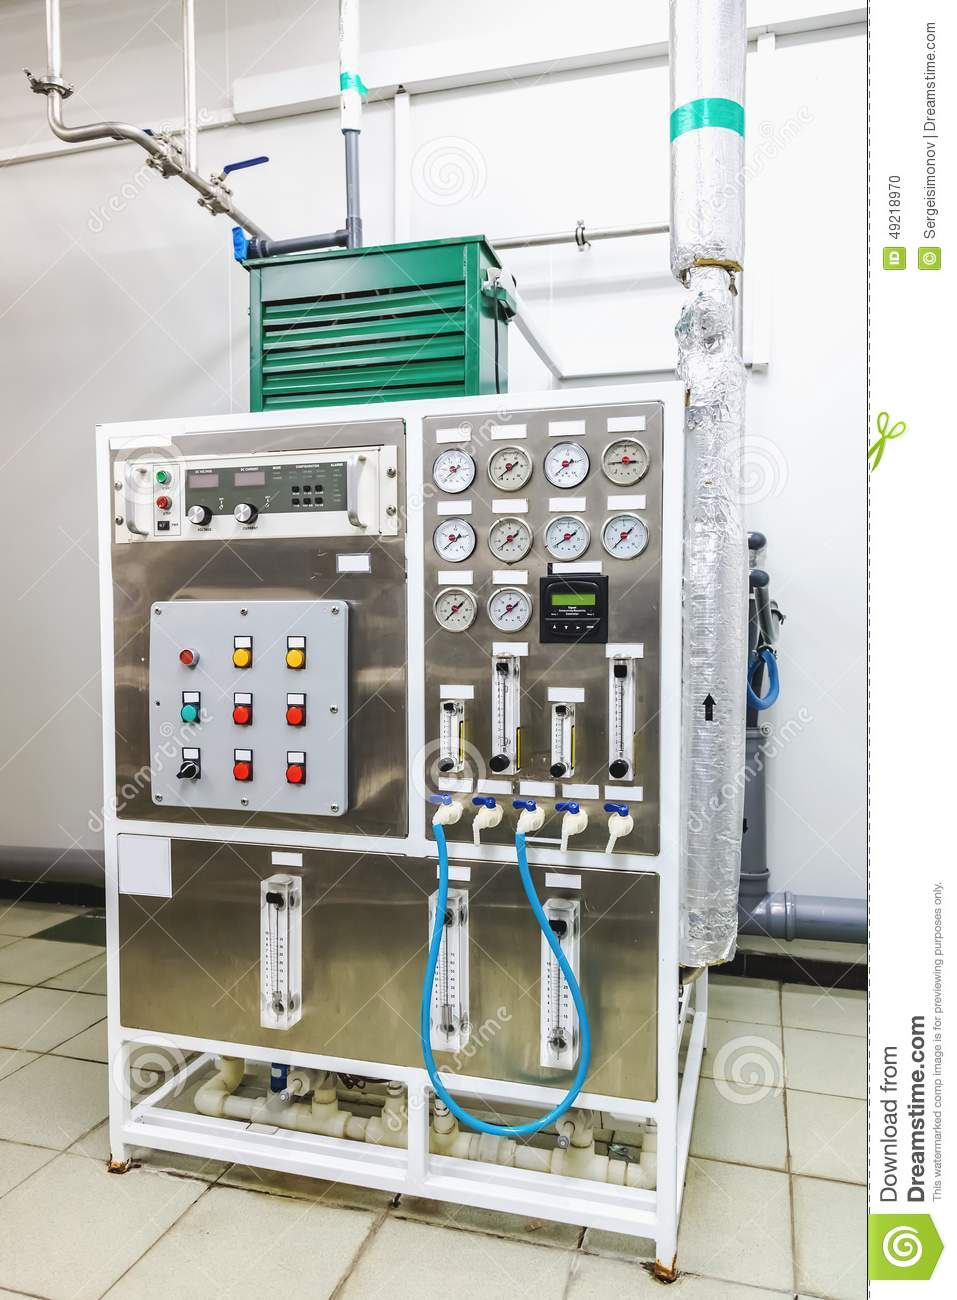 Tractor Technology Panel : Control panel equipment on pharmaceutical industry stock